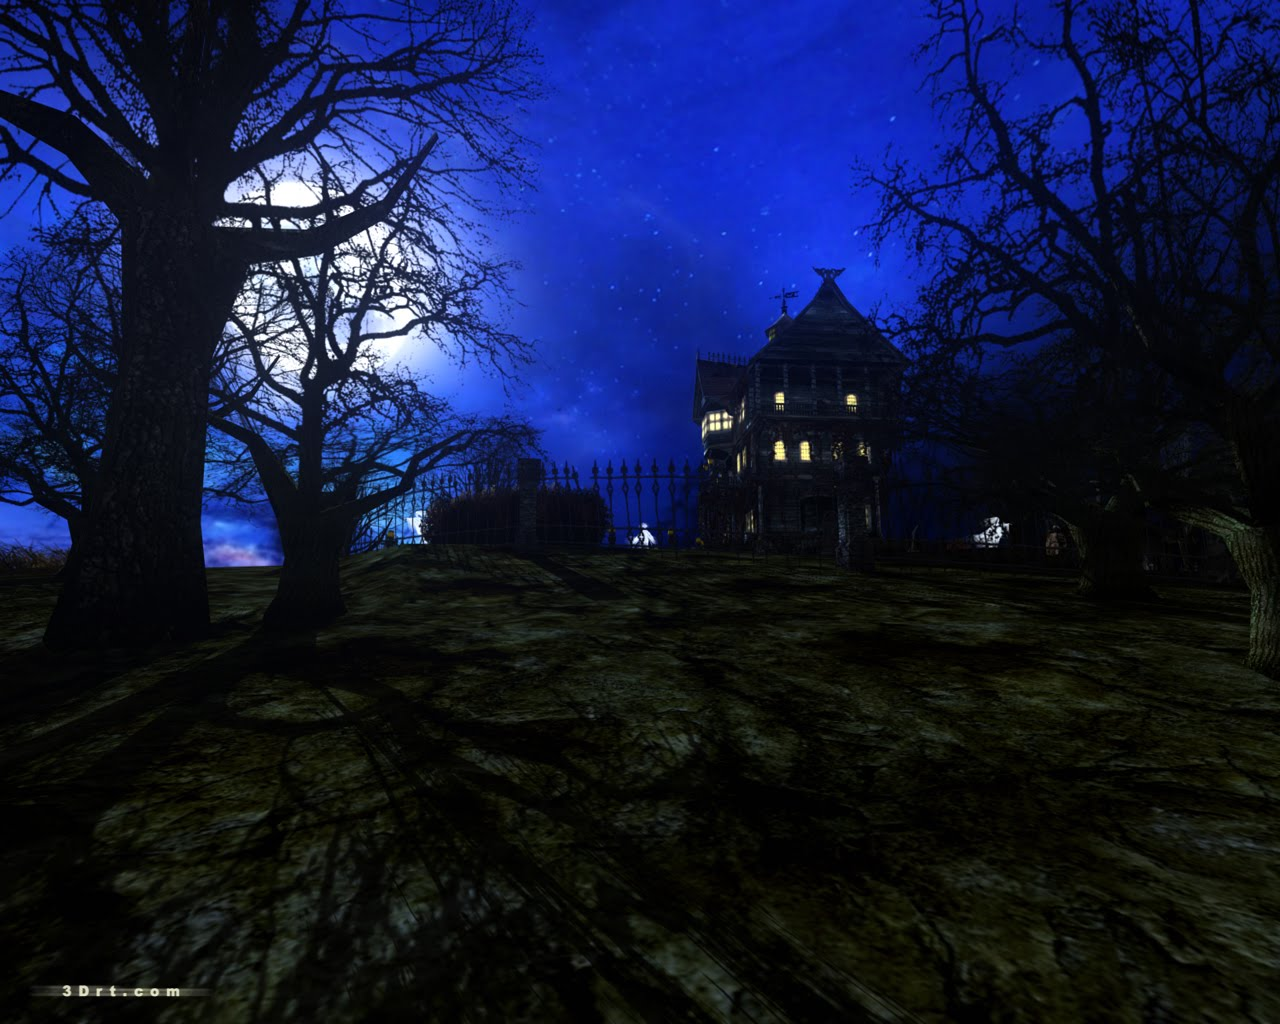 http://2.bp.blogspot.com/-a8uuQ29dPJc/TDlc6Noi08I/AAAAAAAADh8/hKgdzEqr-y4/s1600/haunted-house-wallpaper-2-1280.jpg